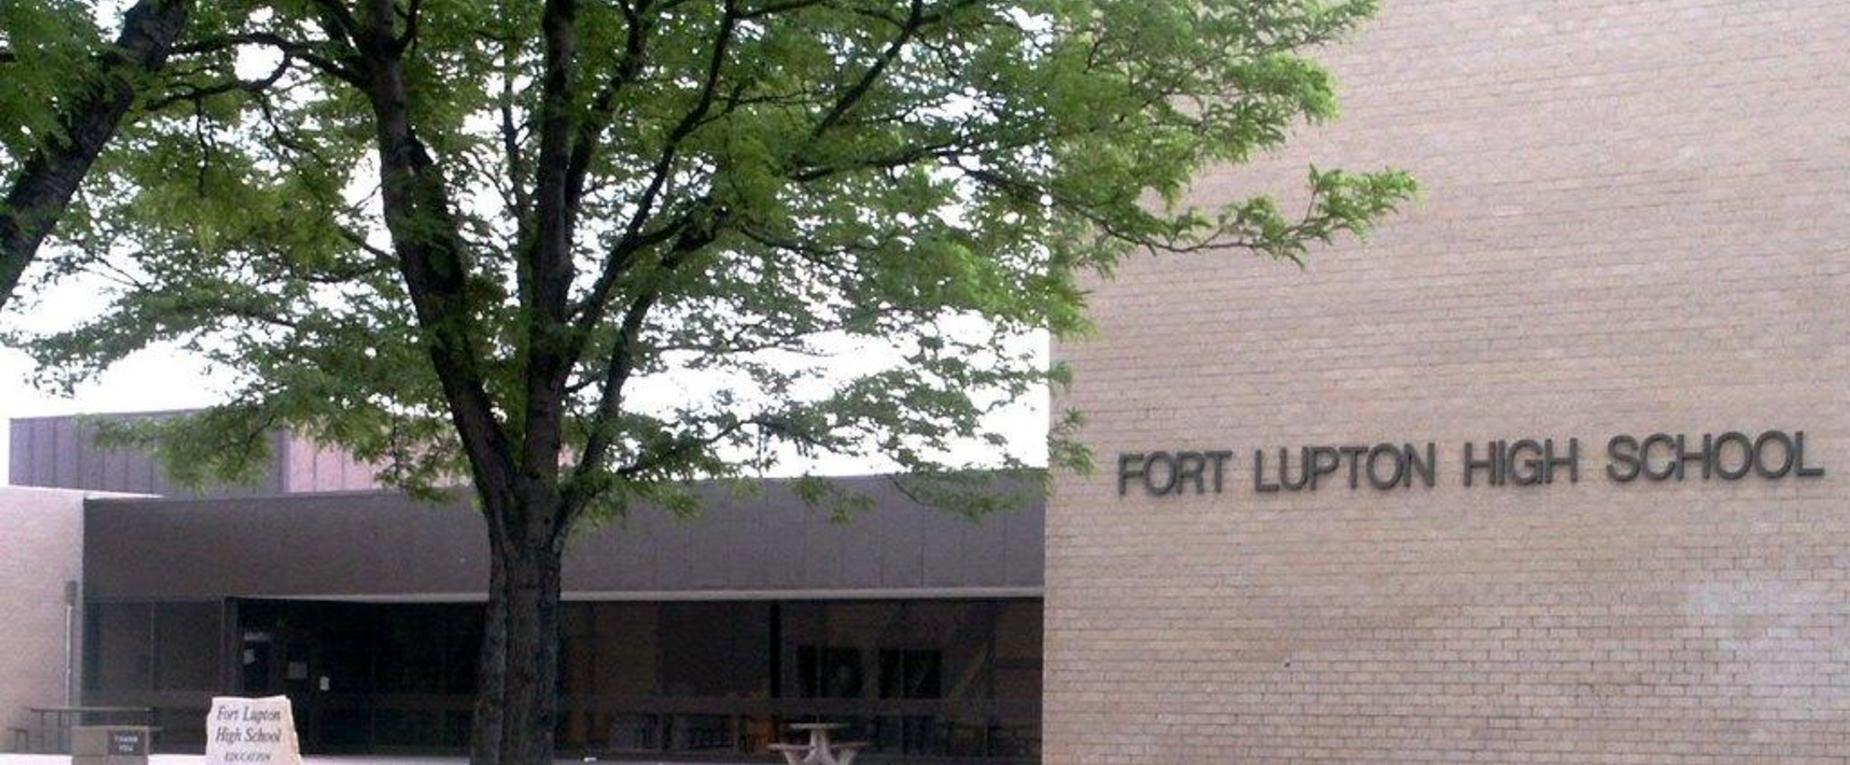 Fort Lupton High School